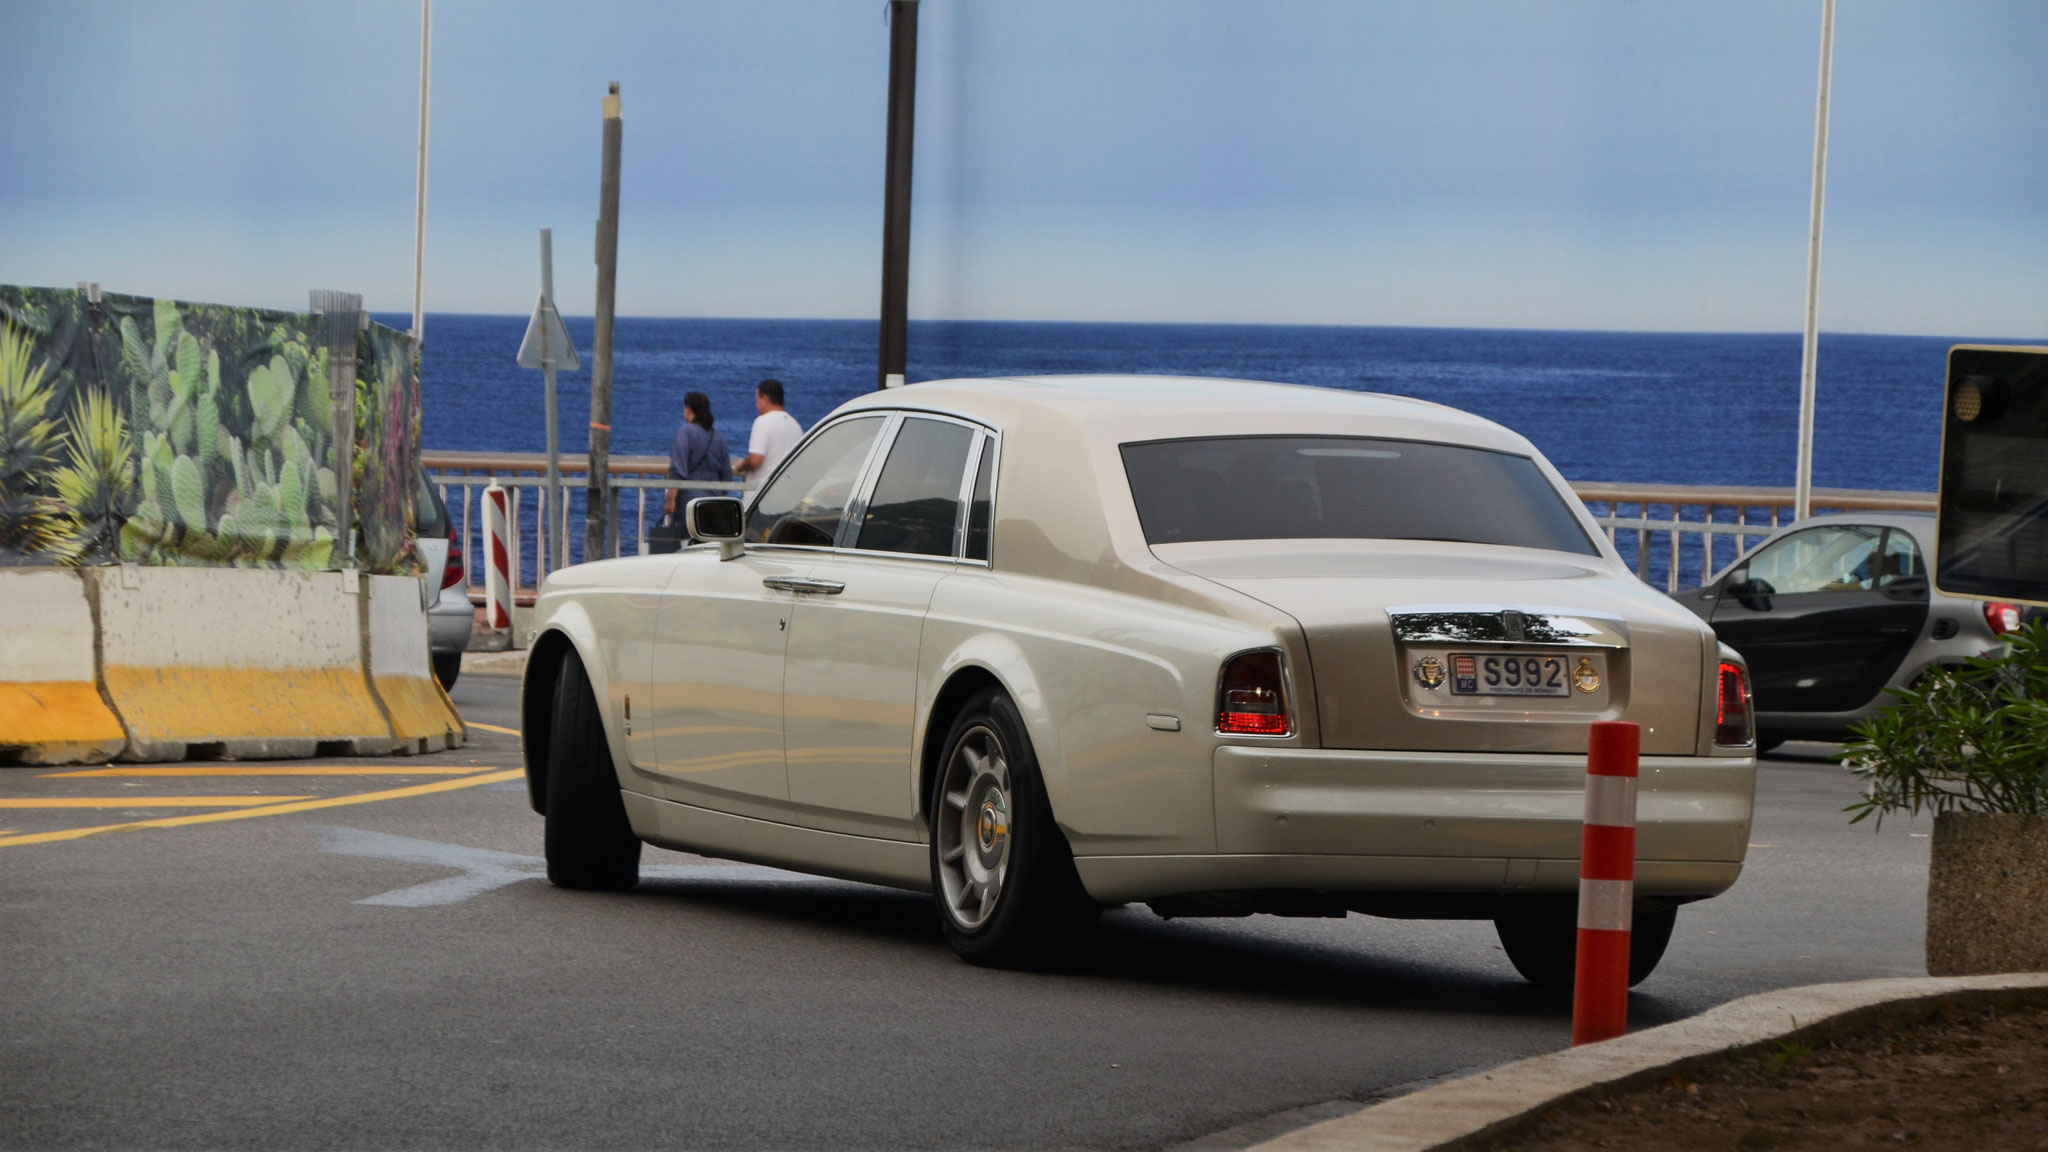 Rolls Royce Phantom - S992 (MC)